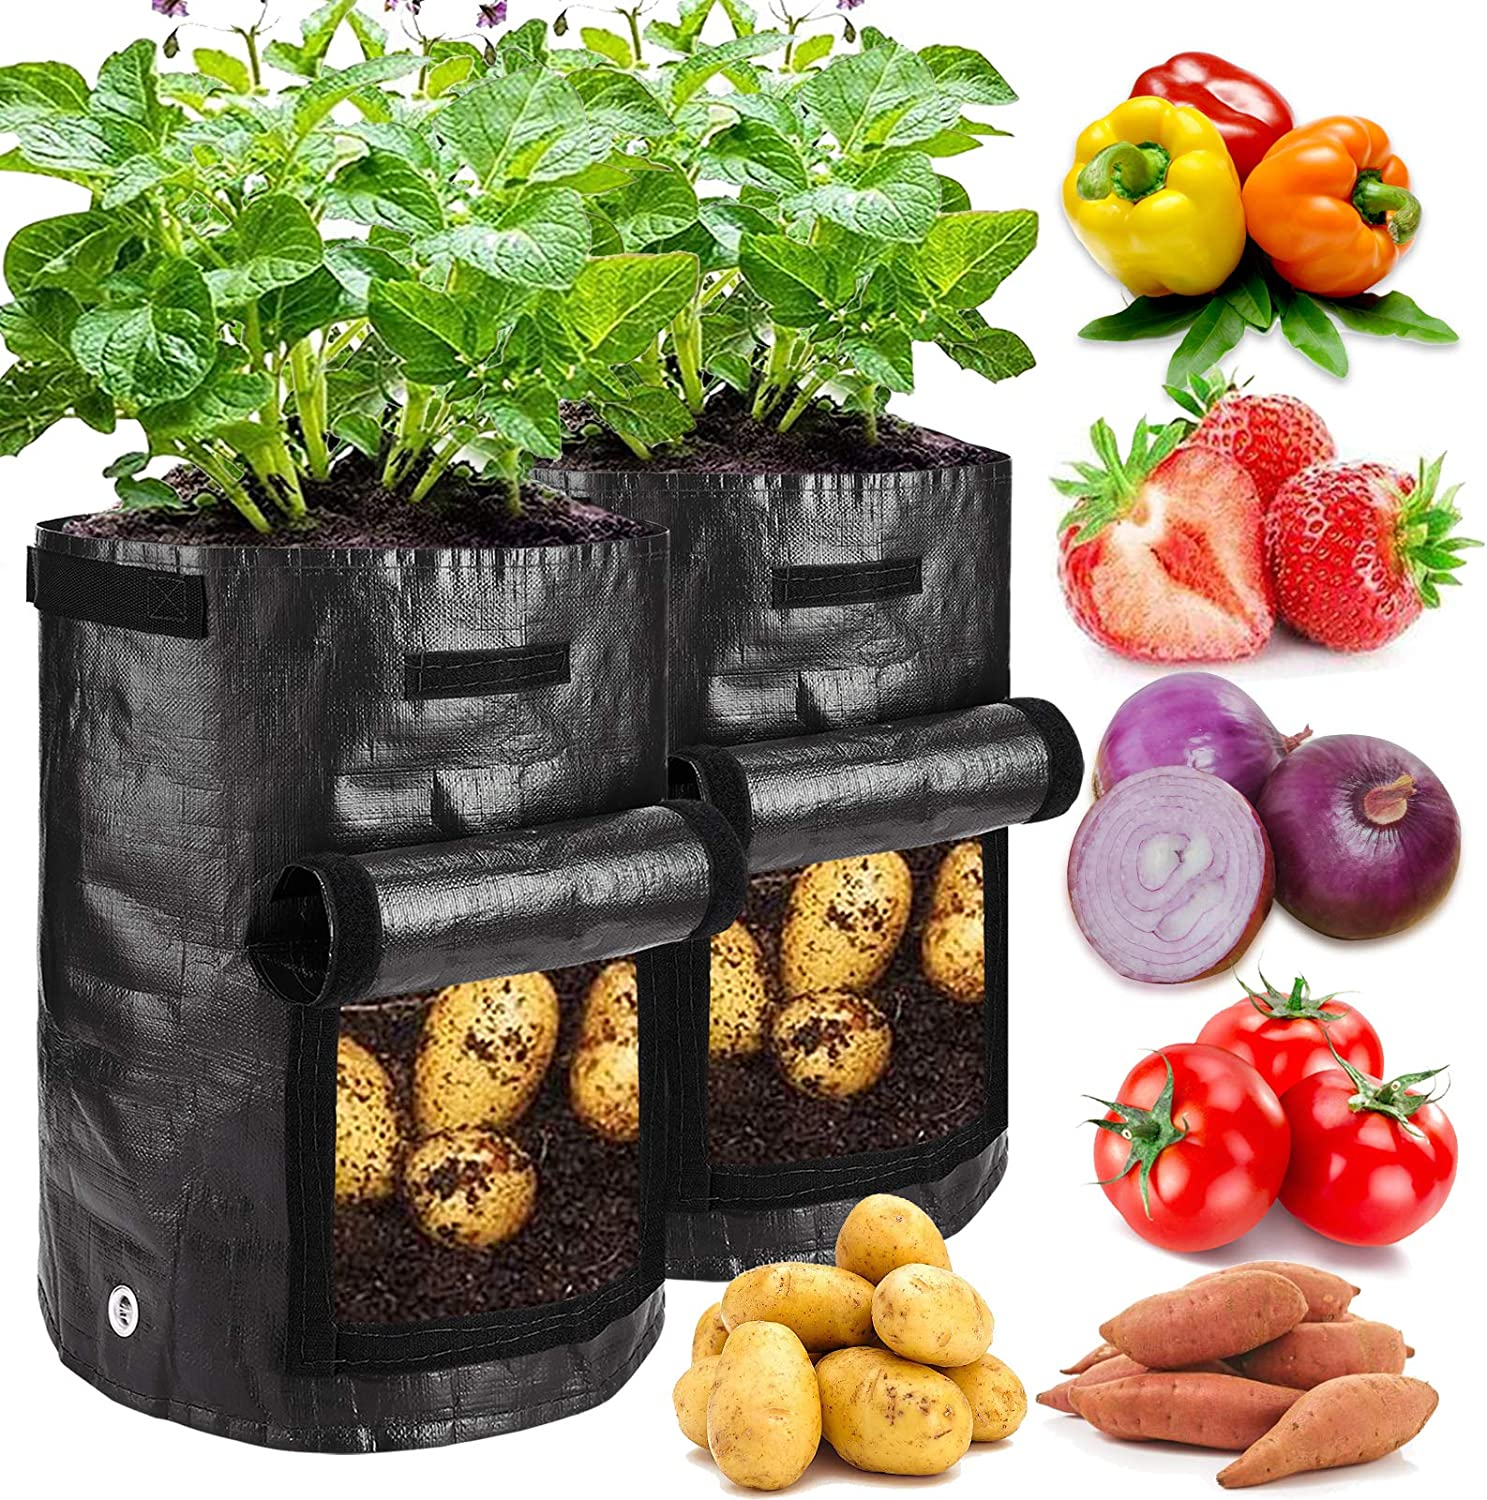 2 Pack Plant Grow Bags, K-MAN 10 Gallon Potato Grow Bags, Thickened PE Planter Bags with Flap & Handles Vegetable Plant Bags Garden Containers Smart Growth Bag for Flower Potatoes(Black)